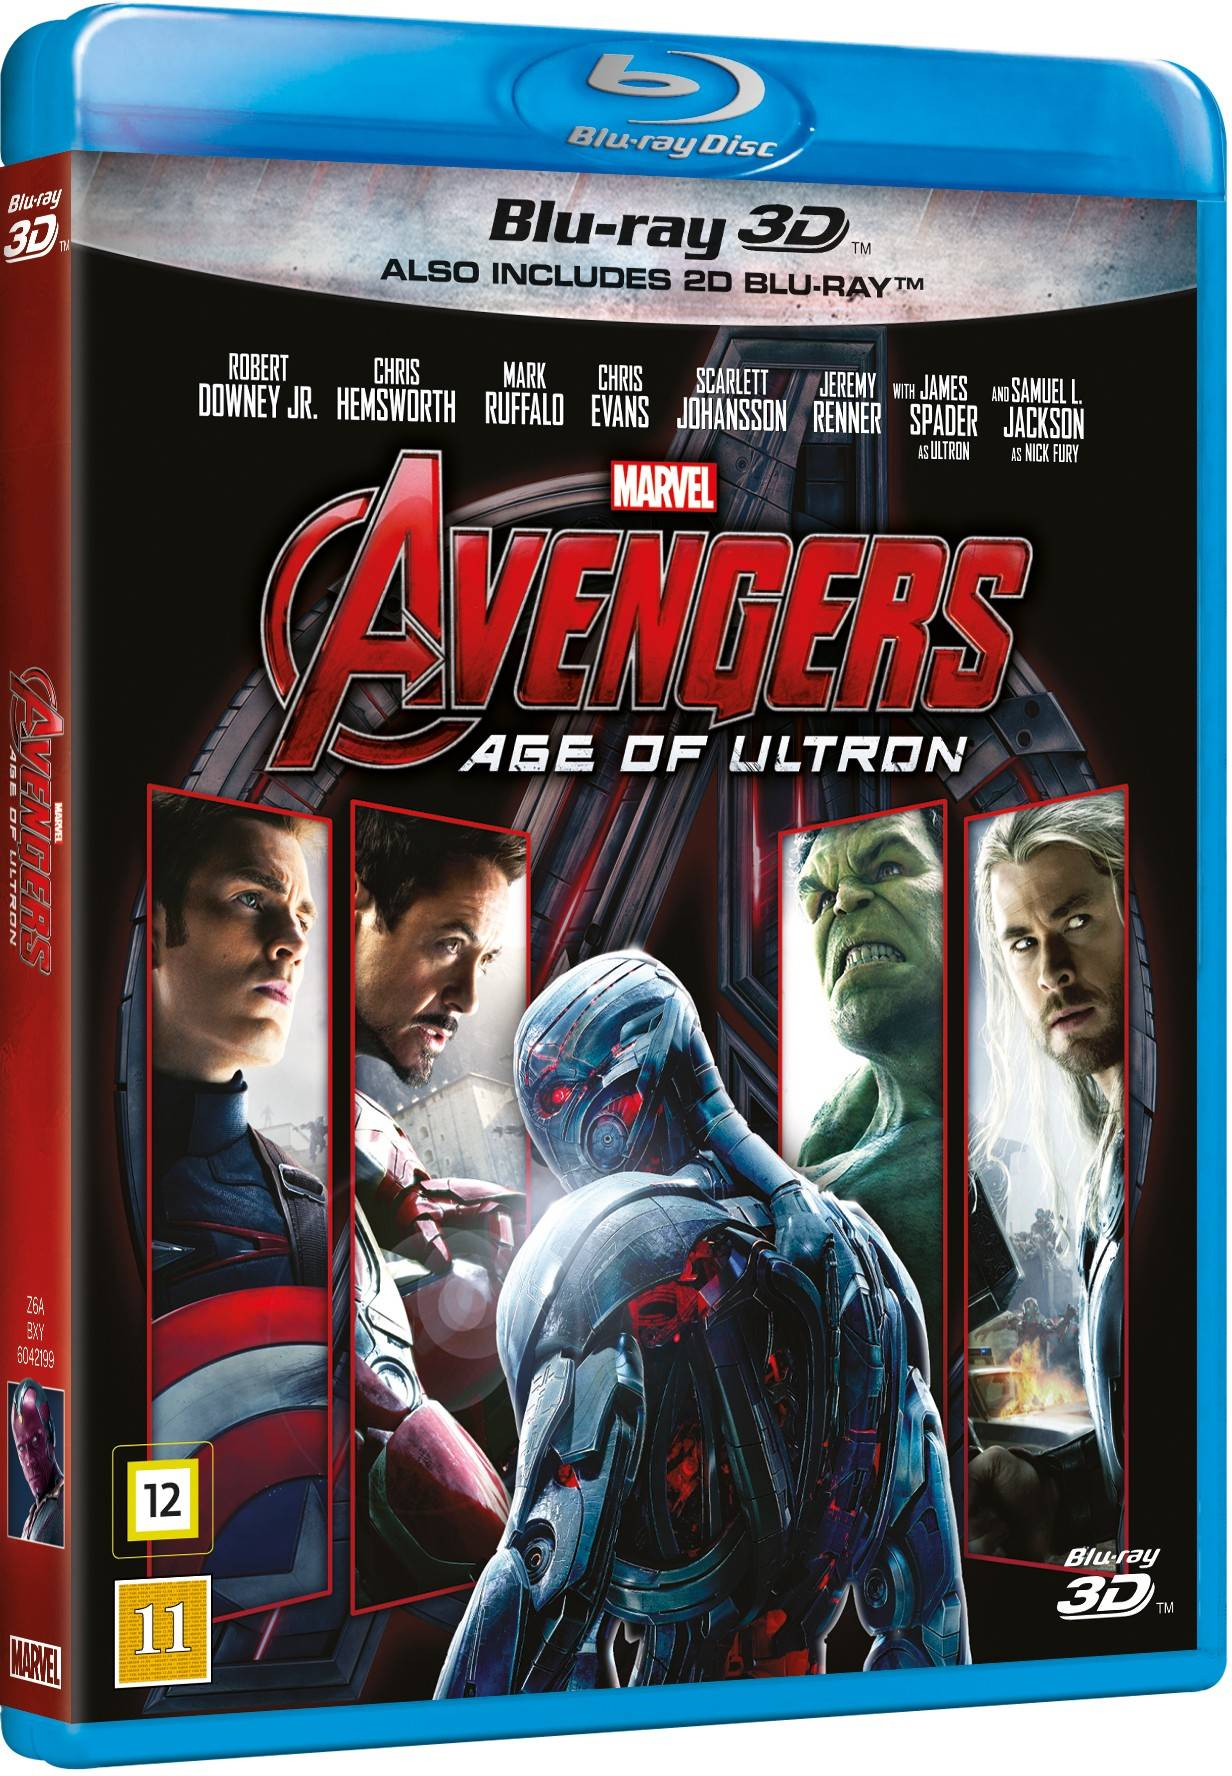 Disney Avengers: Age of Ultron 3D (Blu-ray)